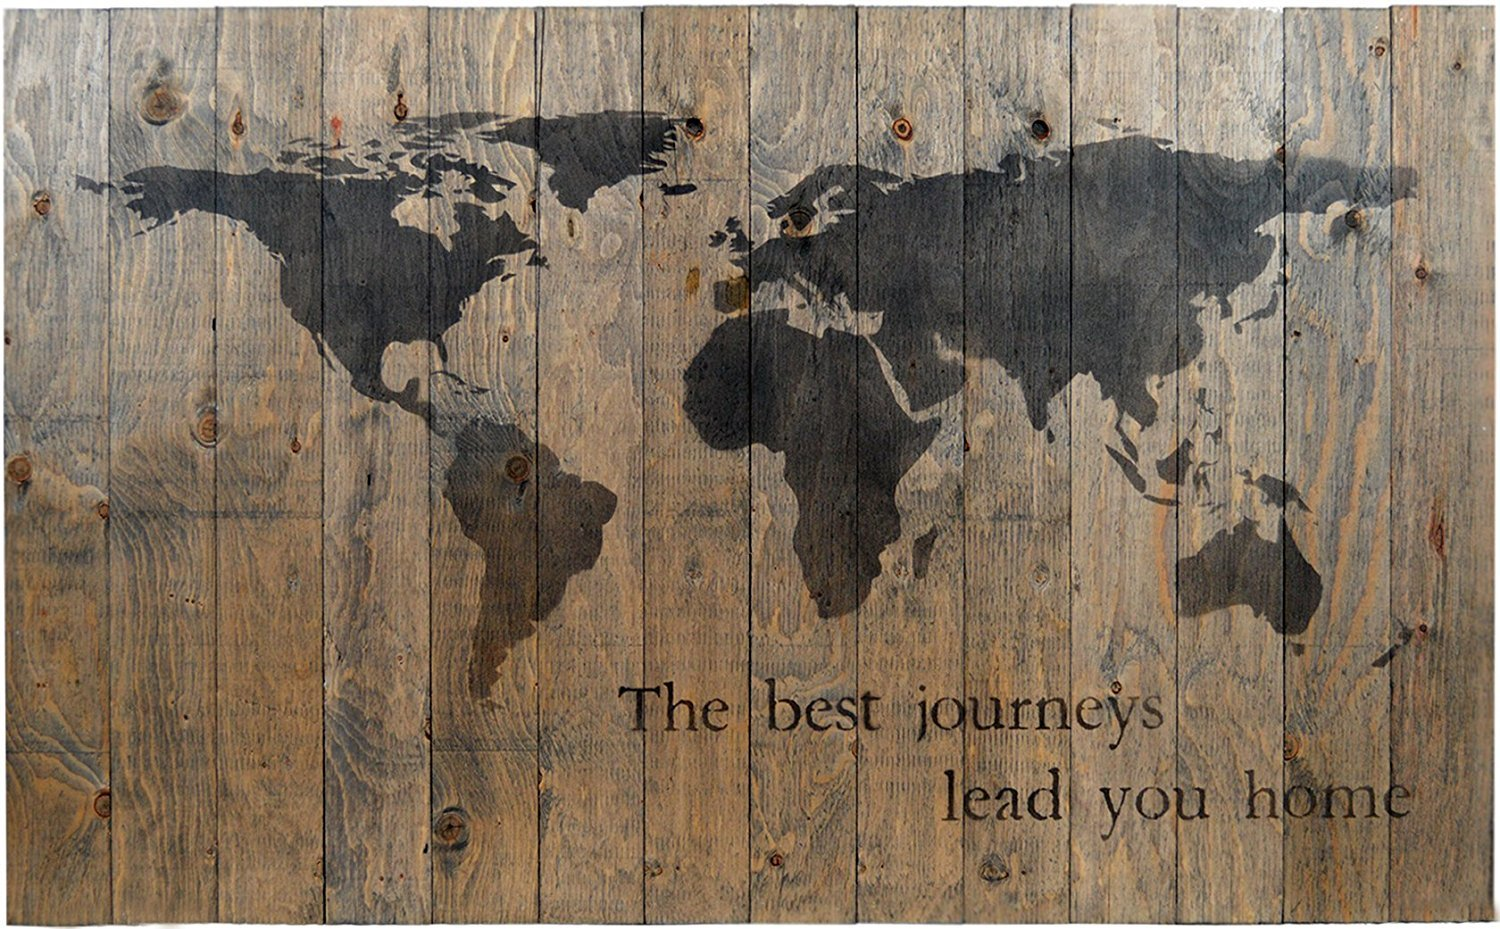 """WORLD MAP RUSTIC BARN WOOD PALLET SIGN - THE BEST JOURNEYS LEAD YOU HOME. 42""""x26"""" Handcrafted elegant antique style wall decor with inspirational quote that will look beautiful in your family home"""